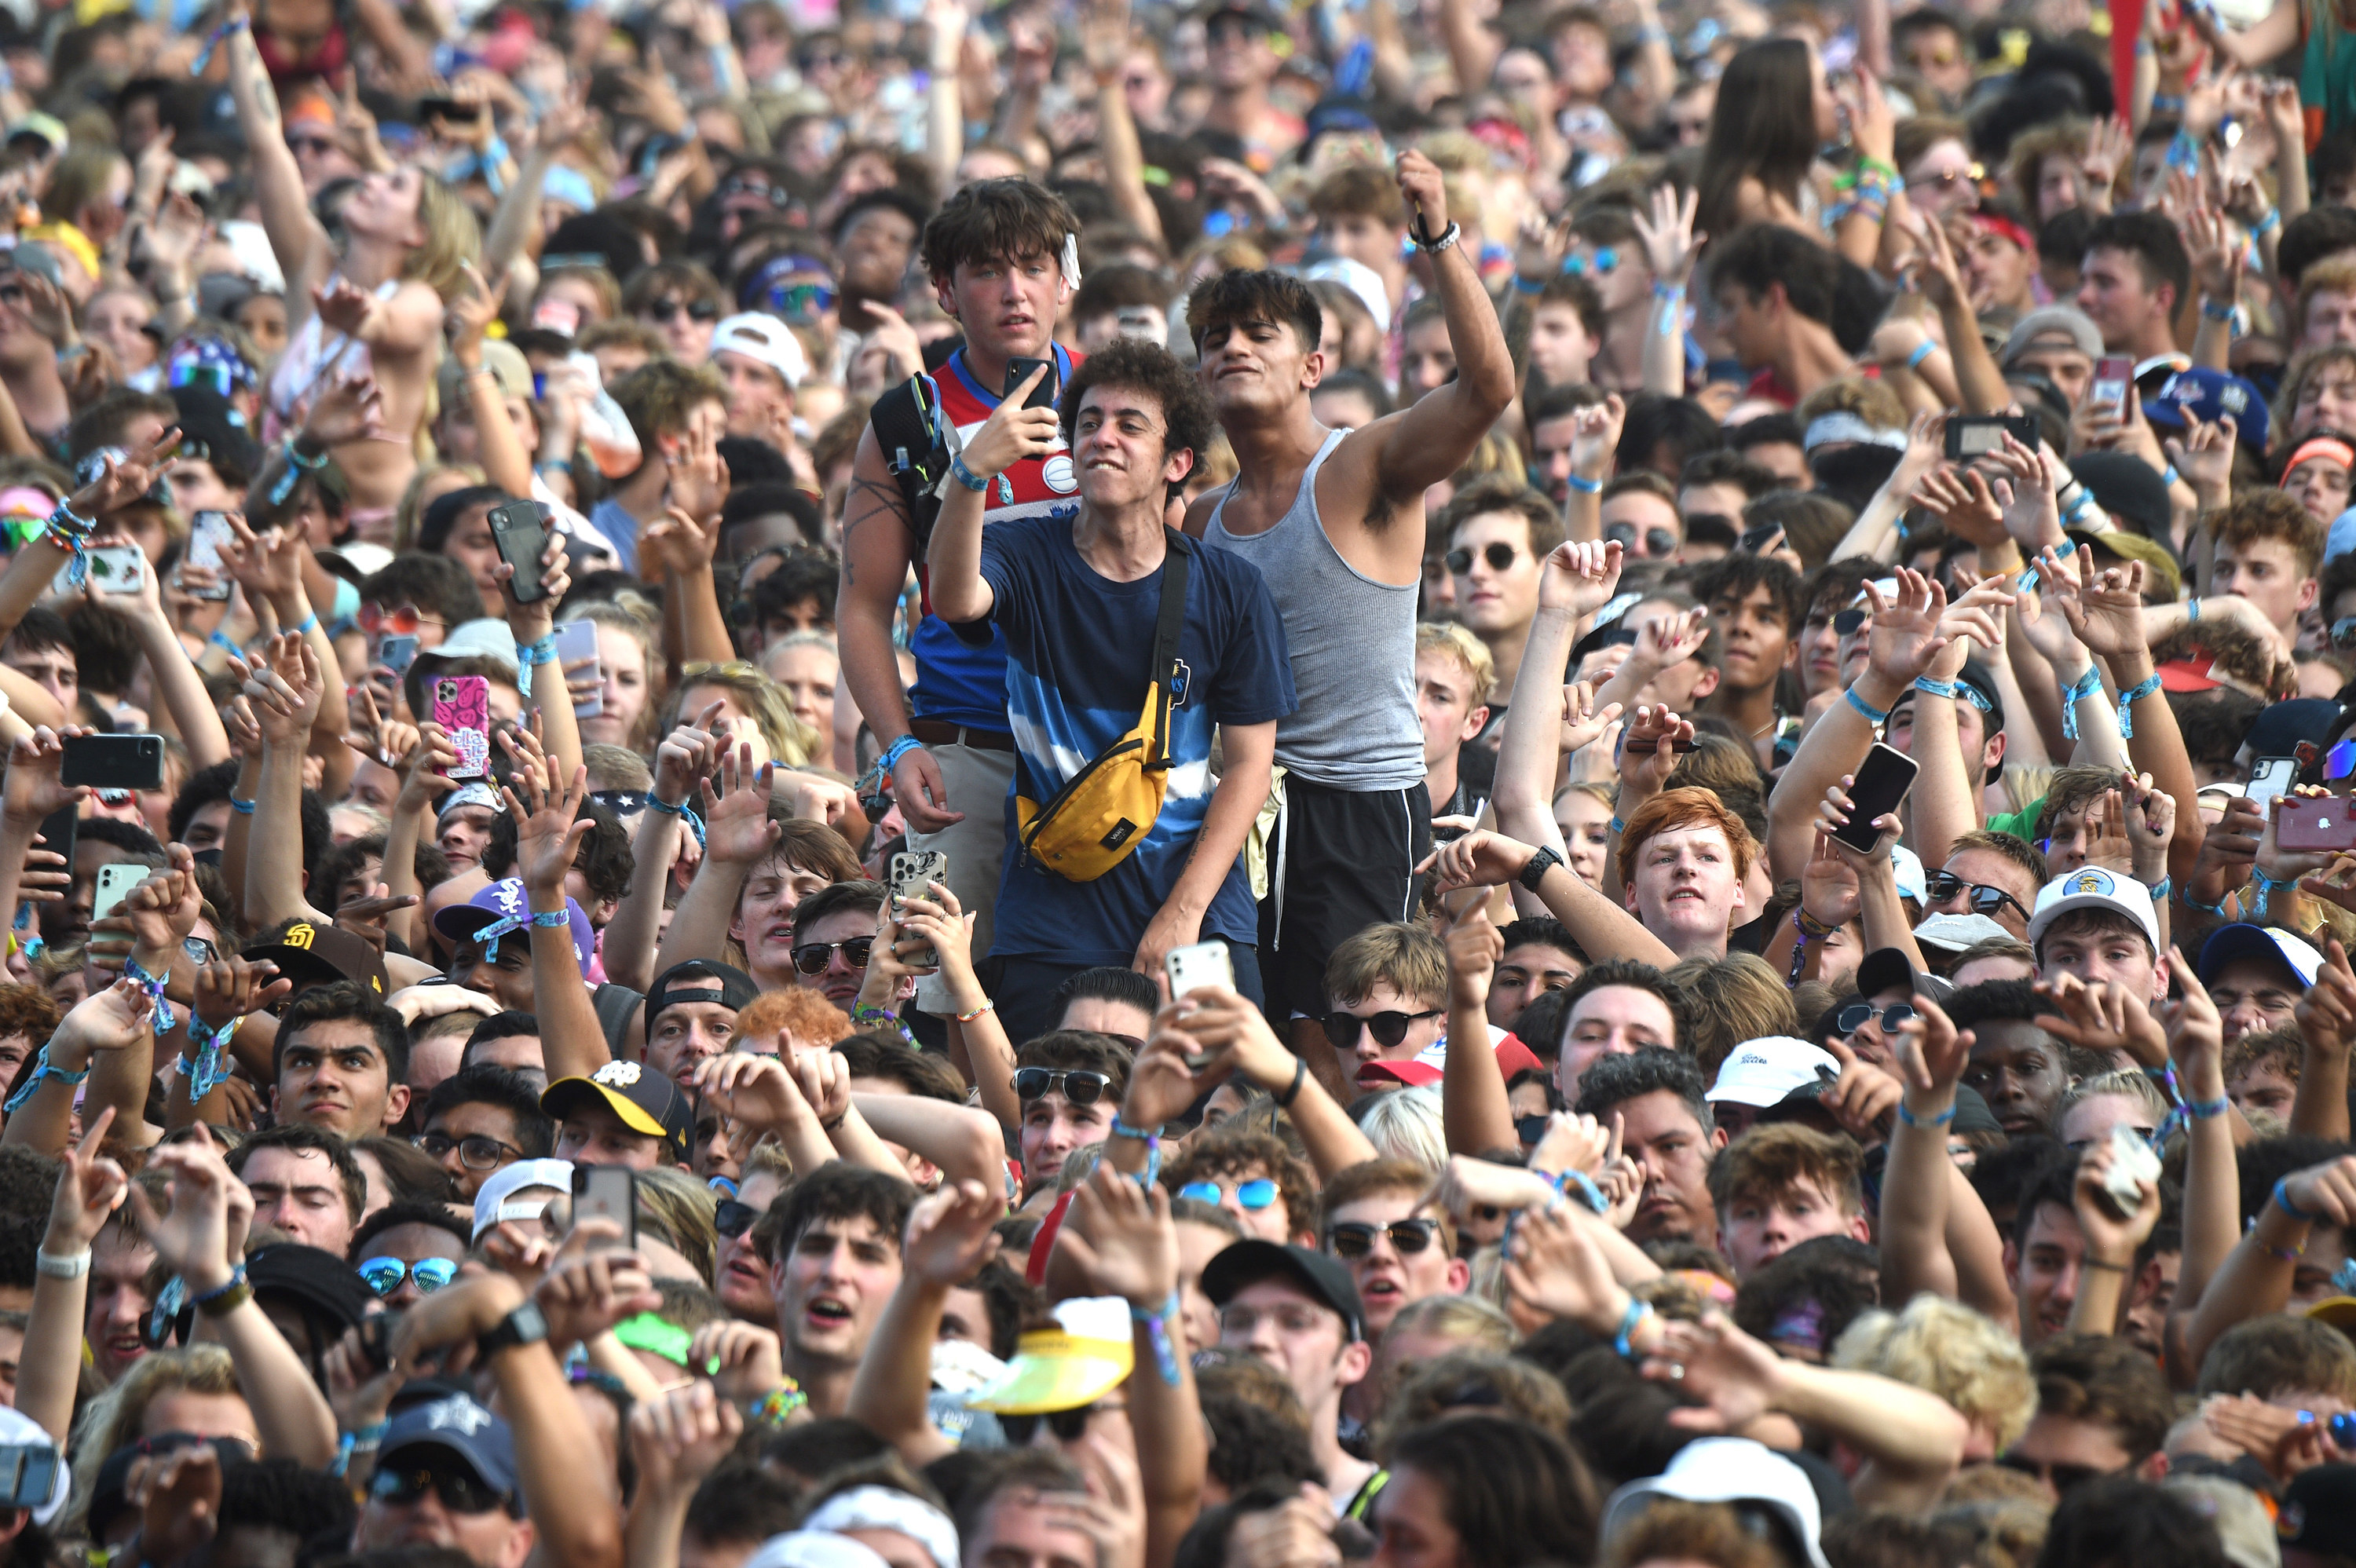 A crowded view of attendees at Lollapalooza music festival.